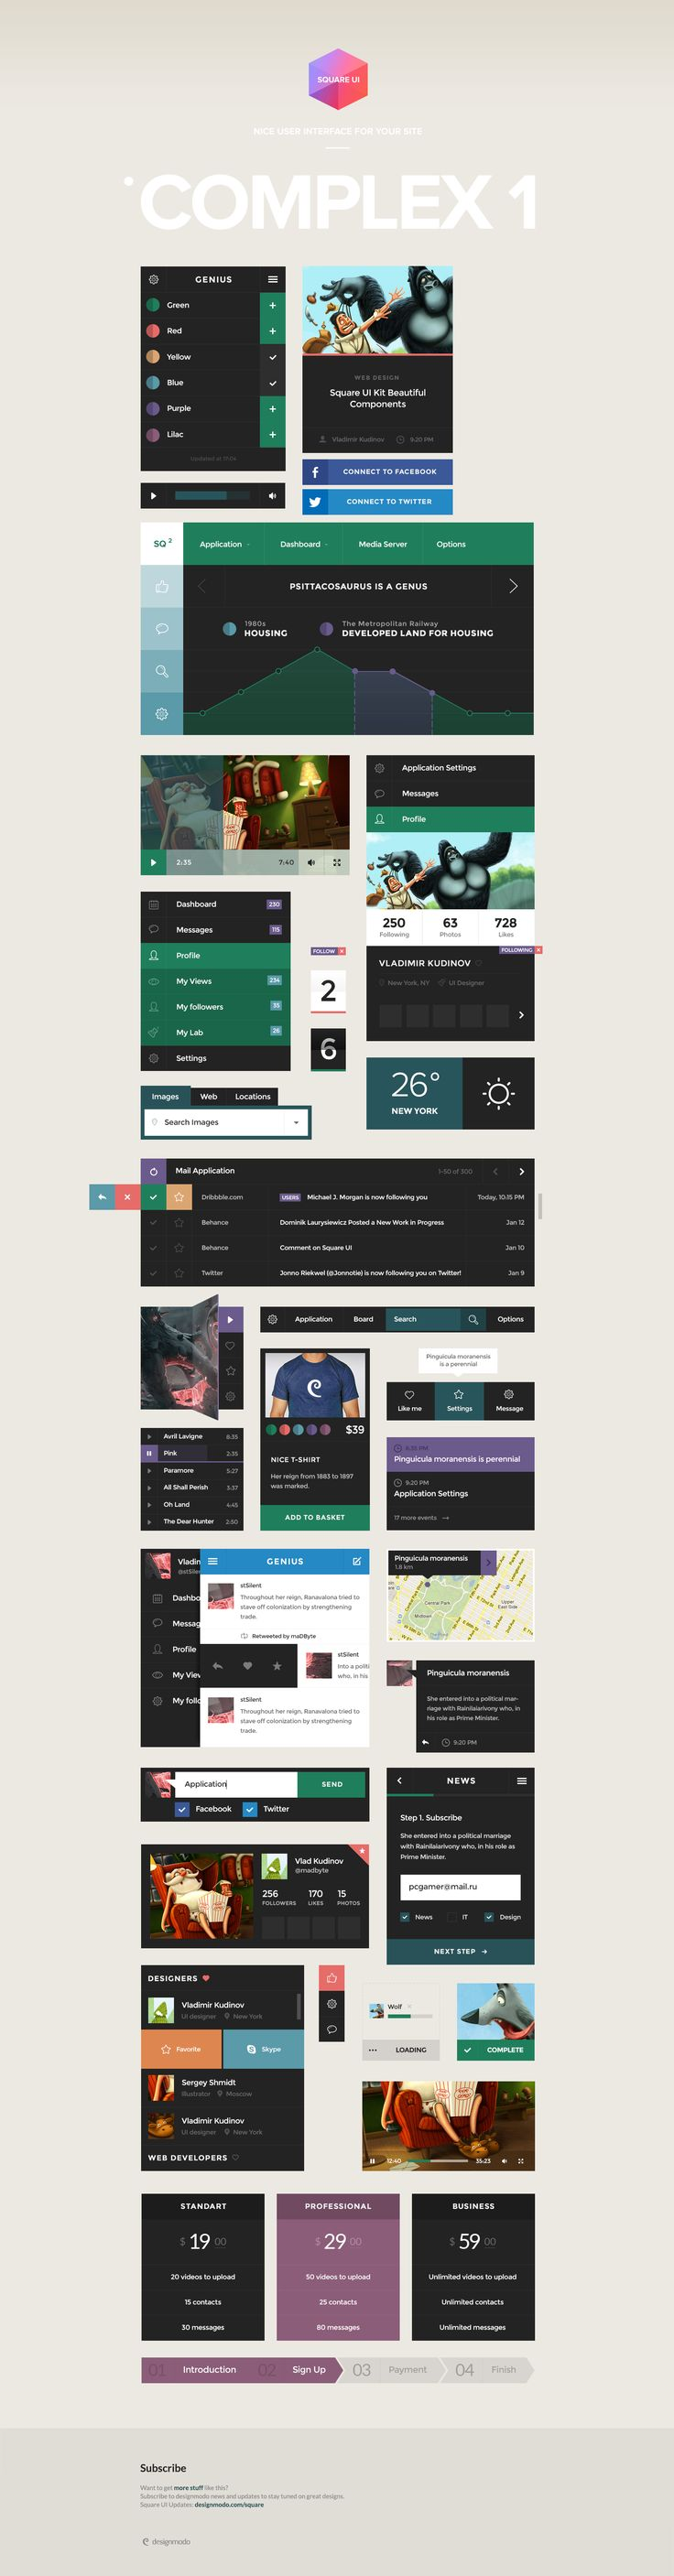 Square User Interface complex Components  #userinterface #interface #elements #buttons #flat #flatdesign #design #player #dashboard #icons #socialmedia #buttons #pricetable #steps